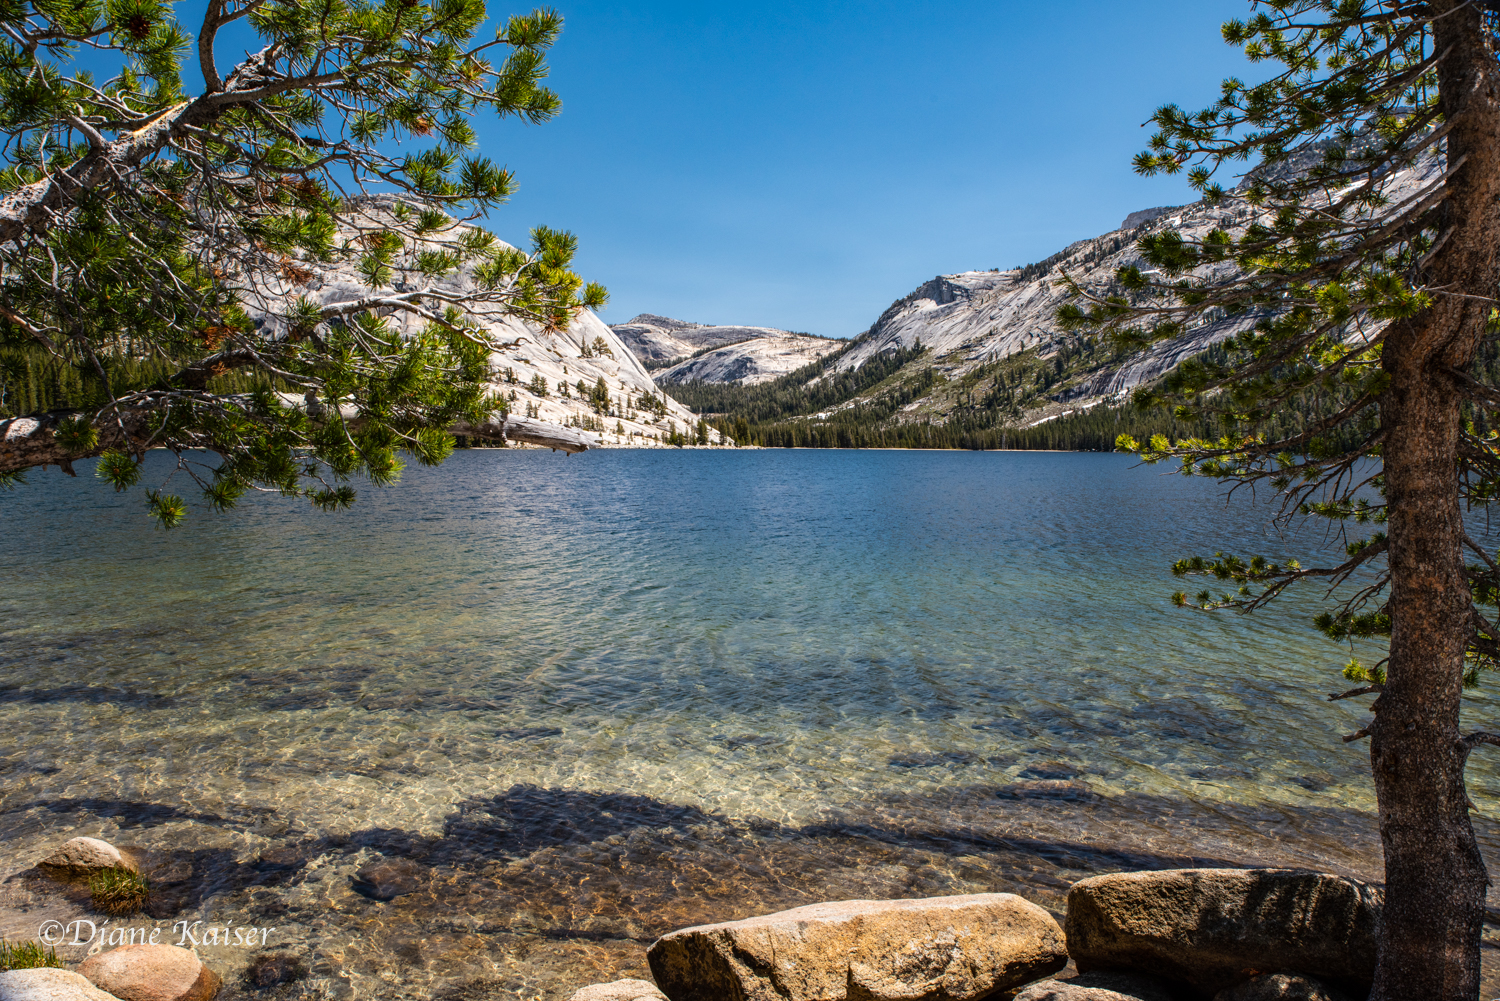 Tenaya Lake is easily accessible from the road.